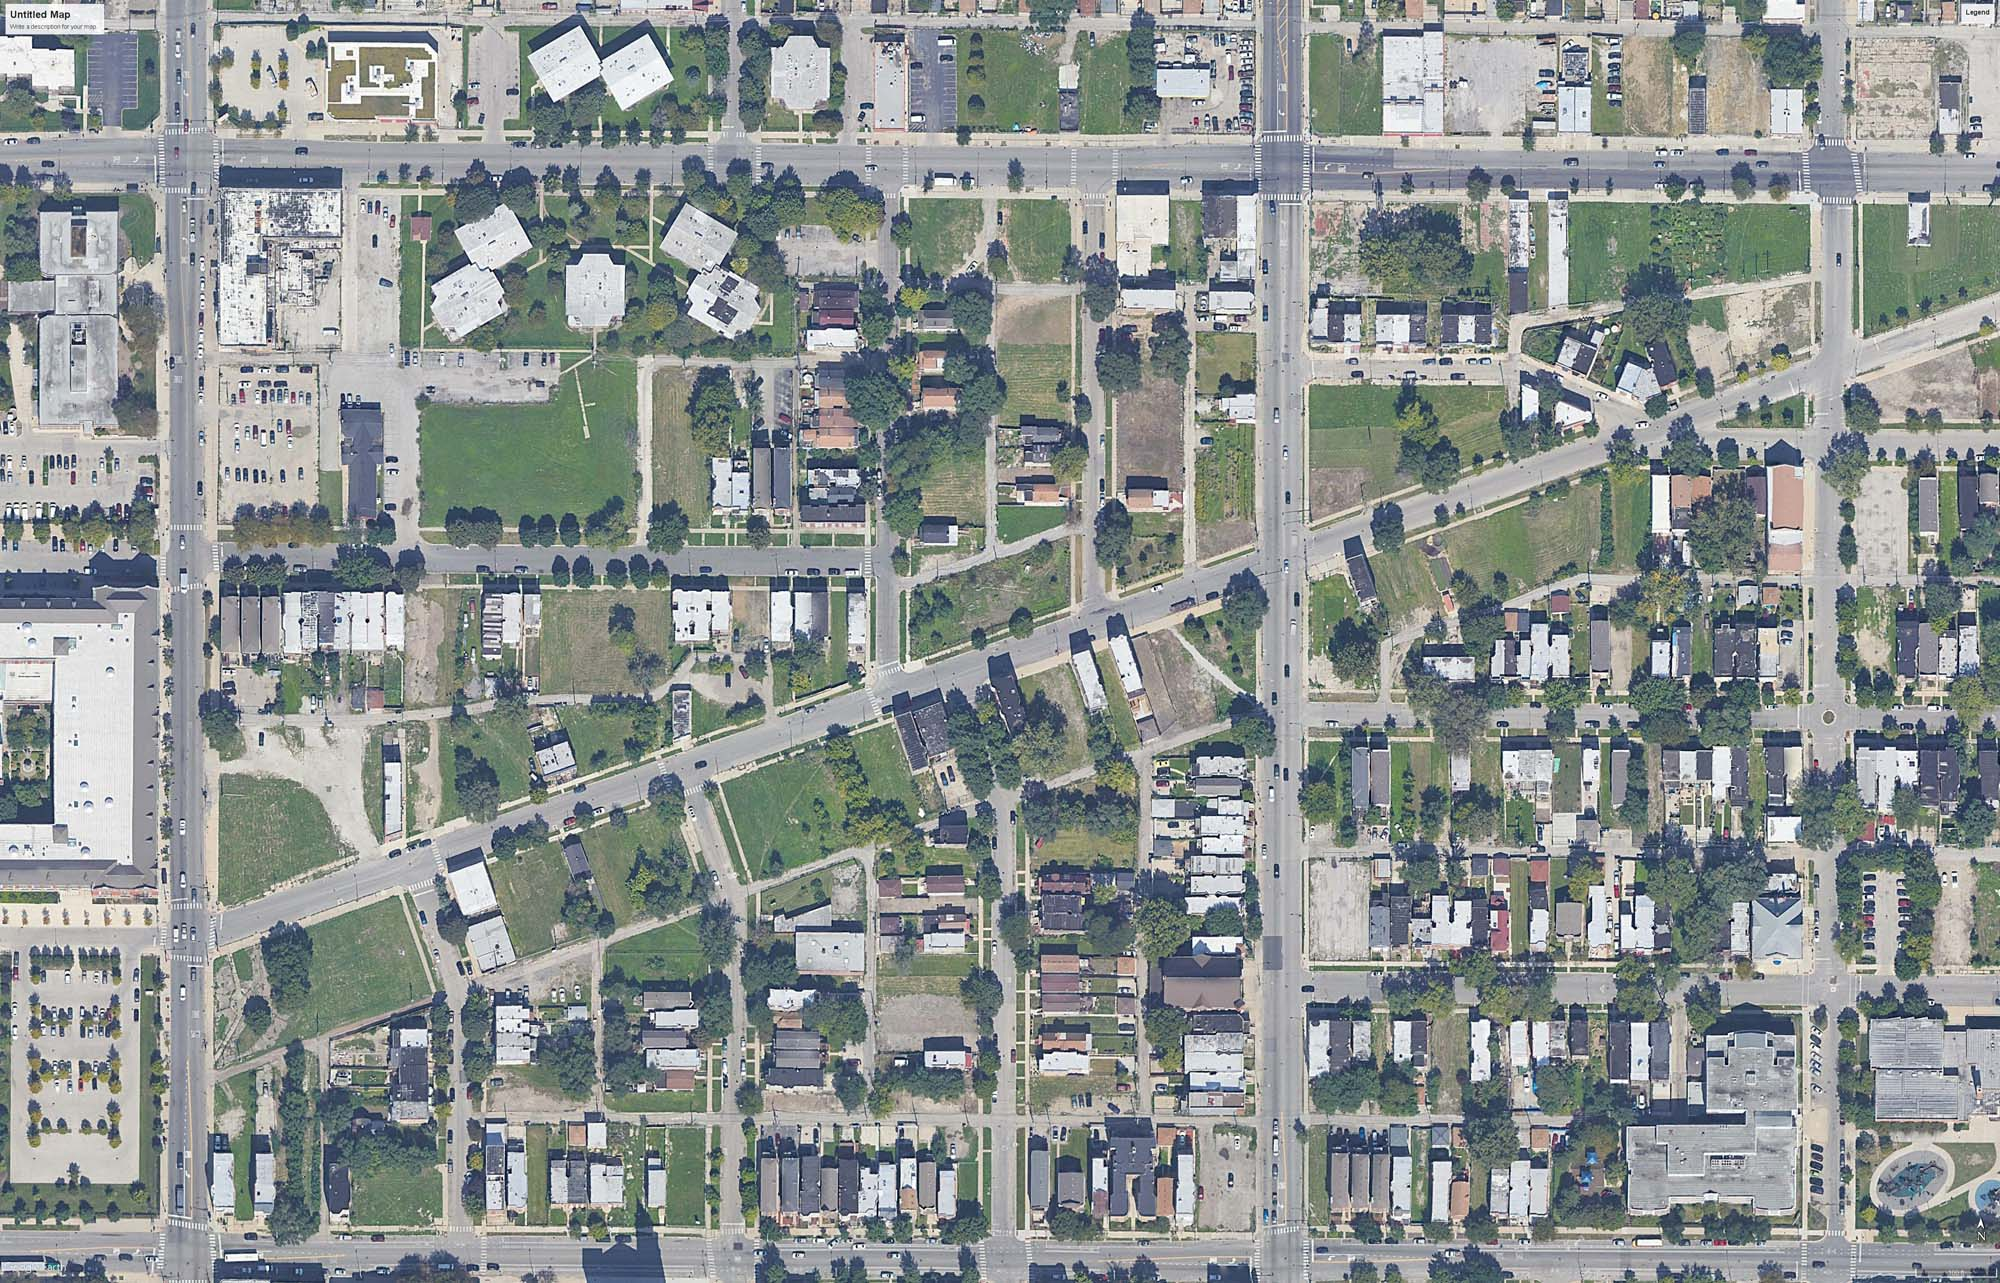 Fig 7 - An Undervalued and Underdeveloped Site in East Garfield Park